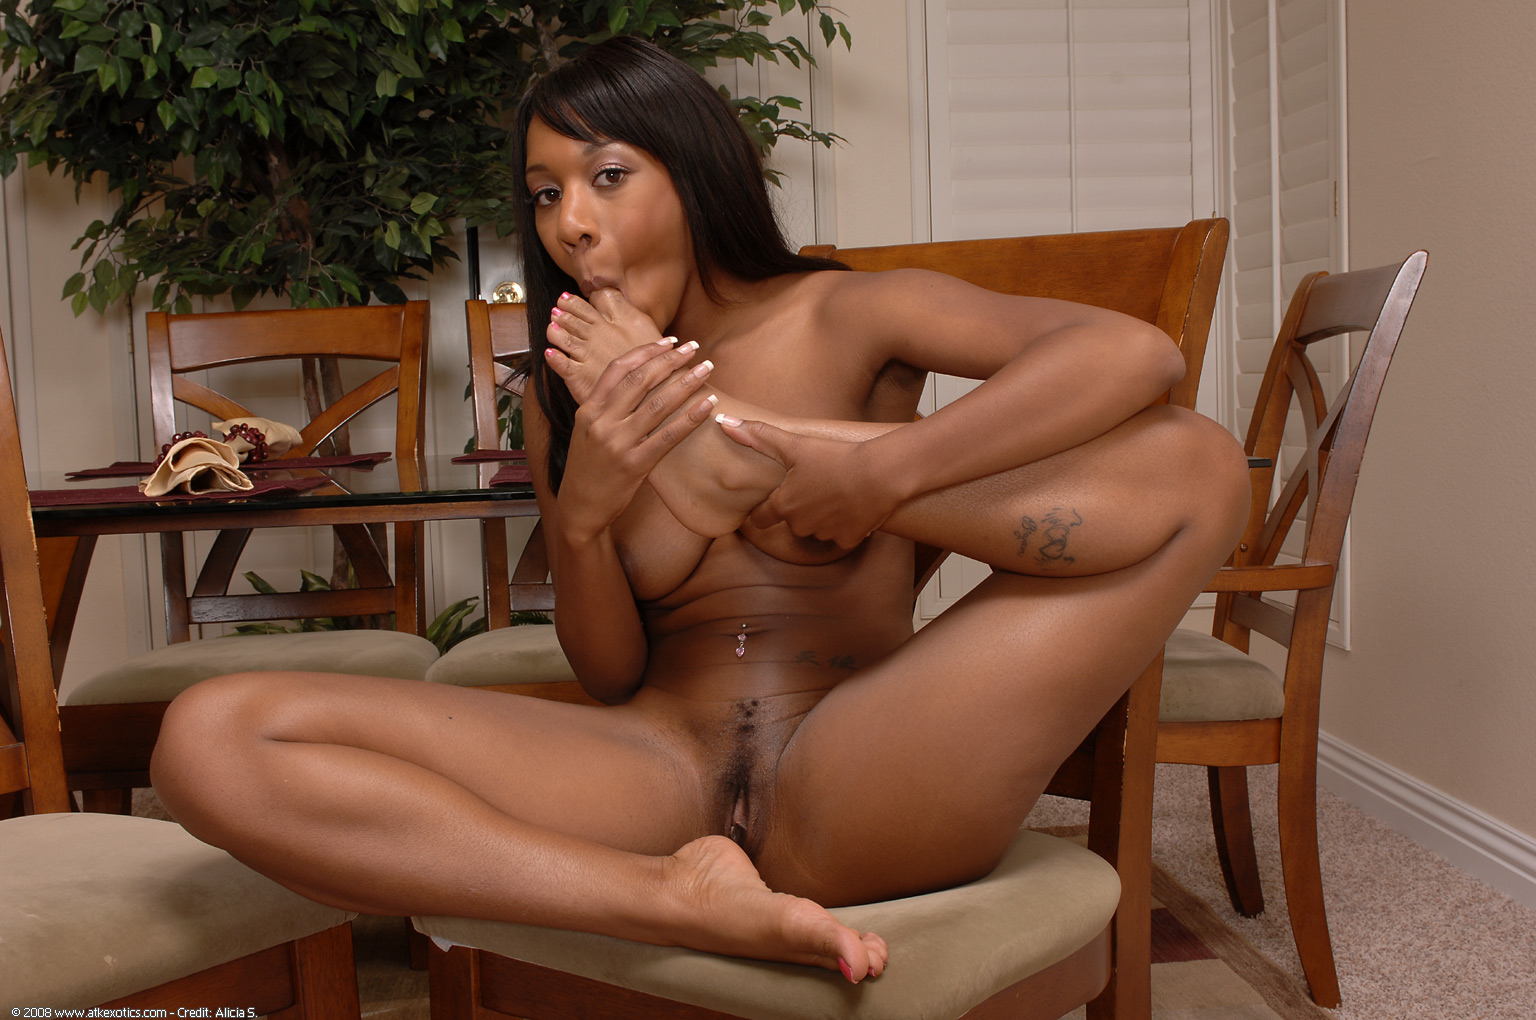 Ebony hard porn pictures women feet beautiful